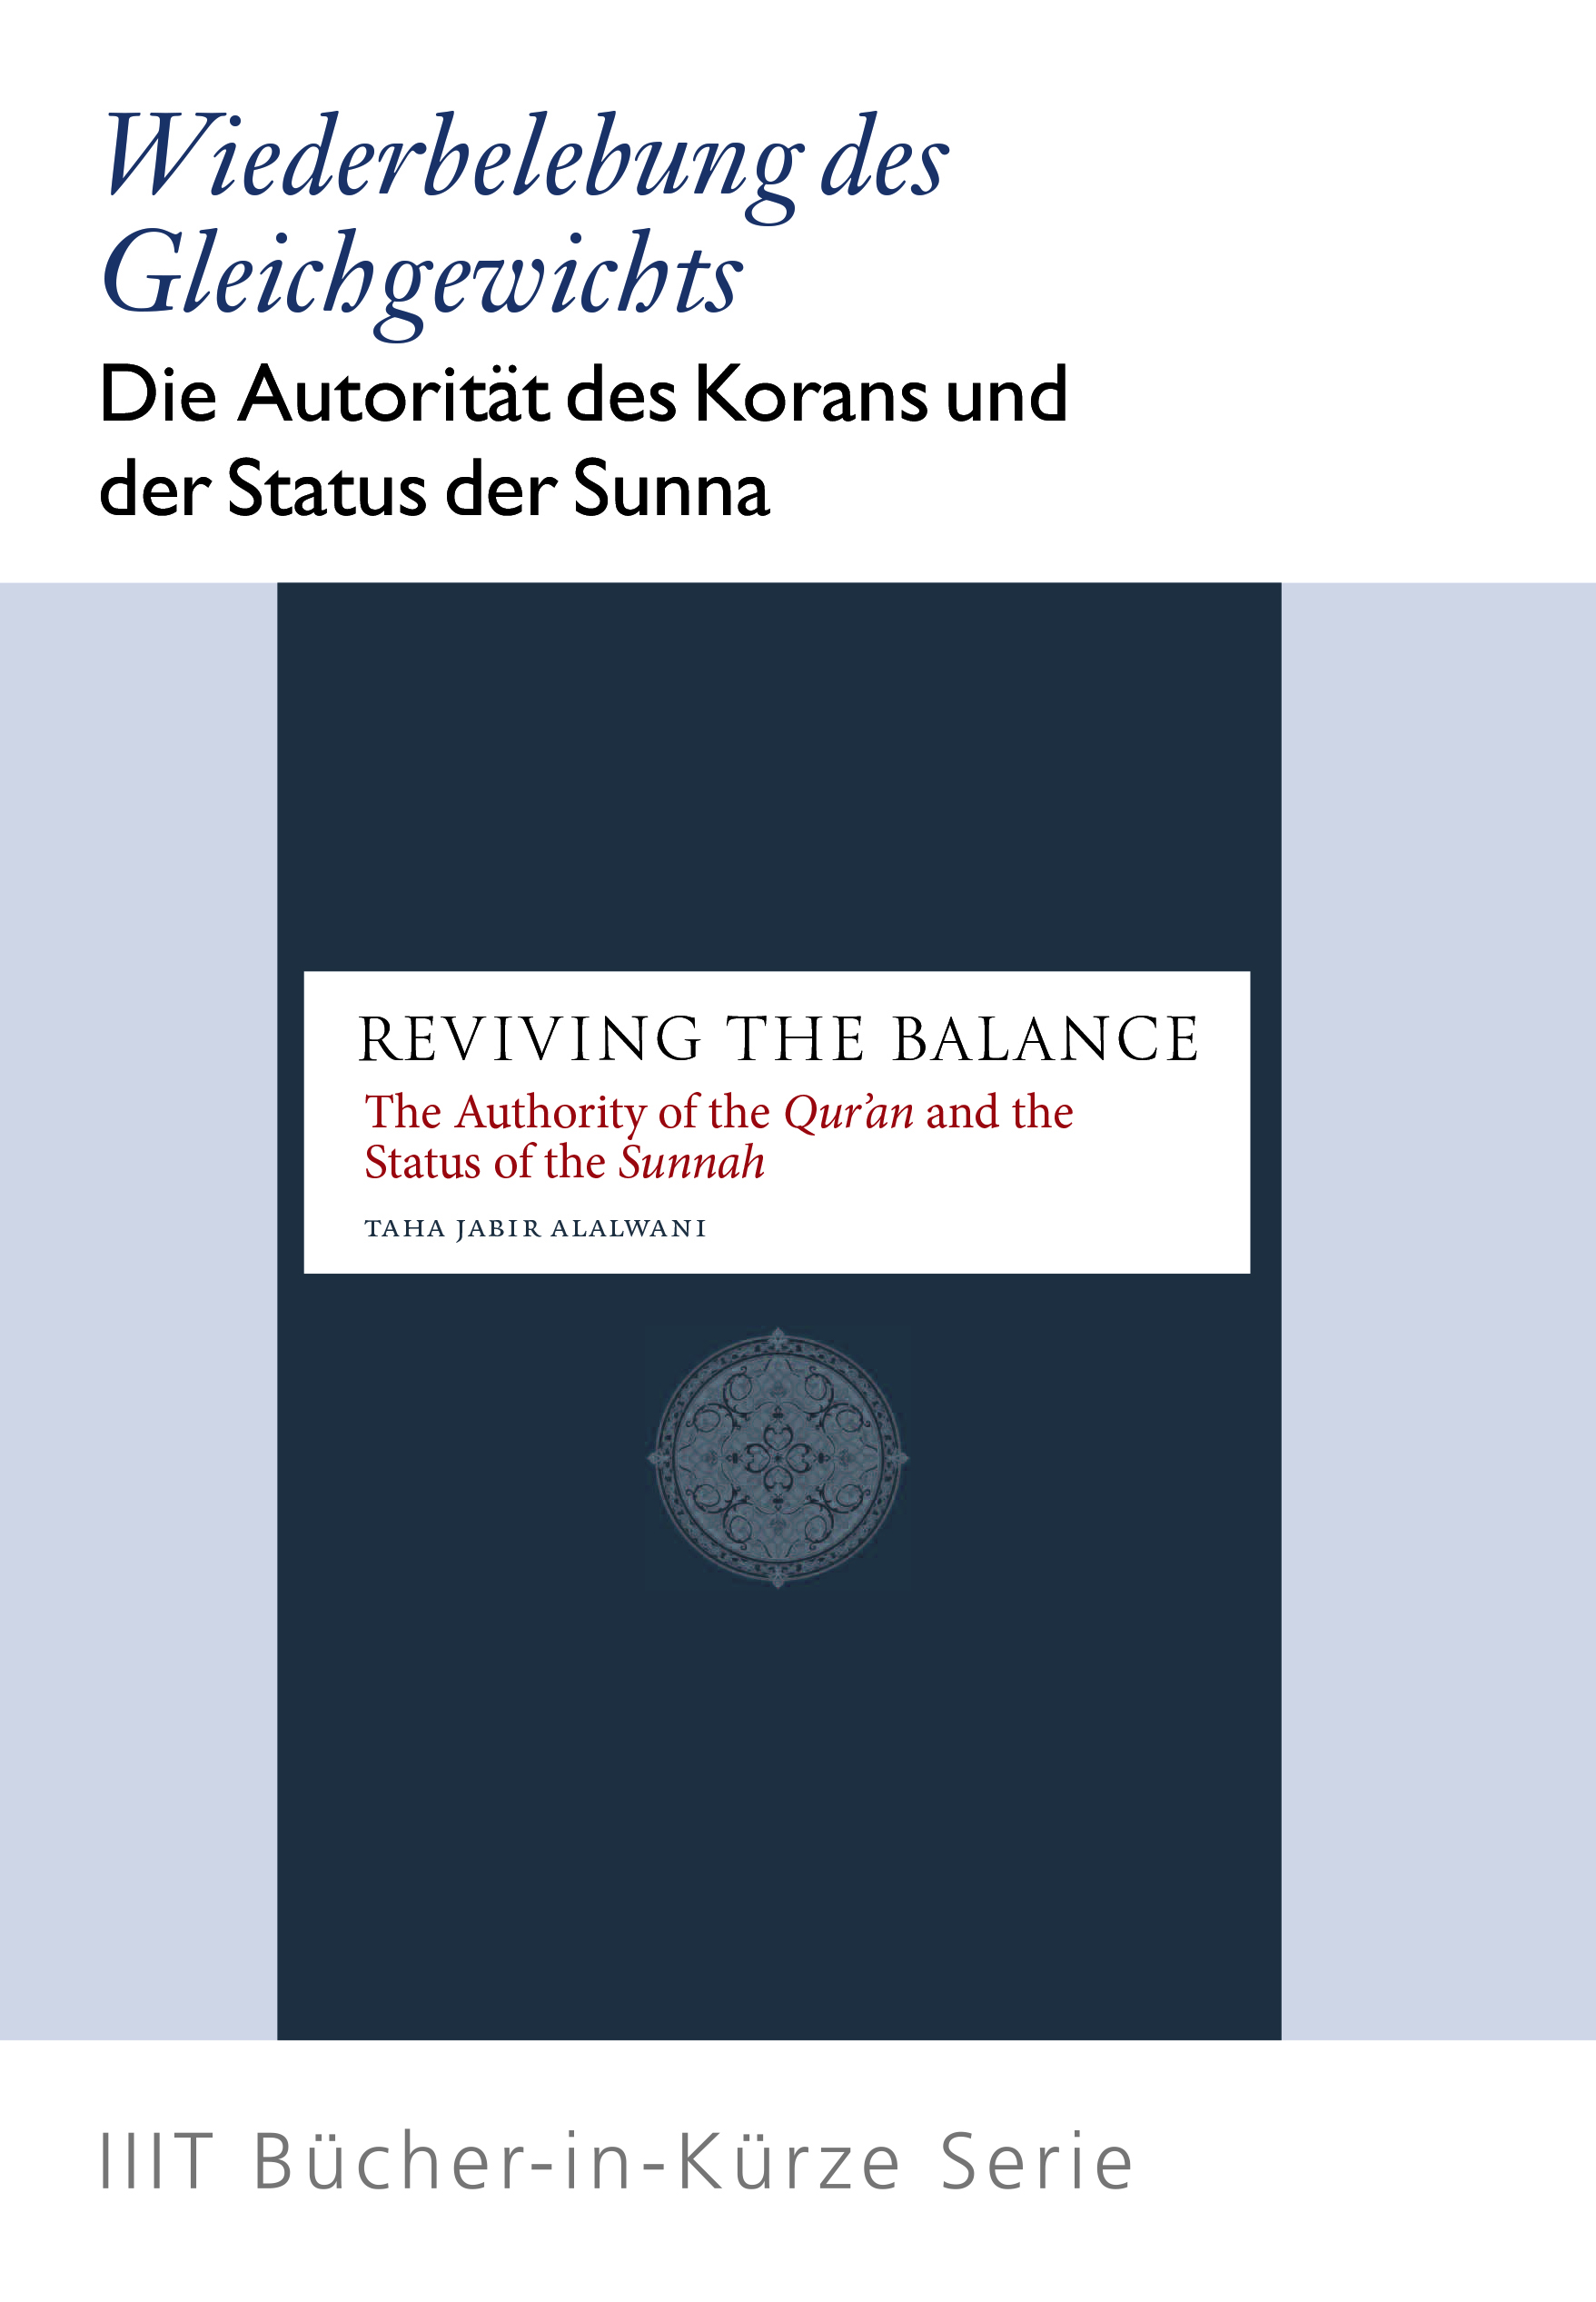 Reviving the Balance: The Authority of the Qur'an and the Status of Sunnah